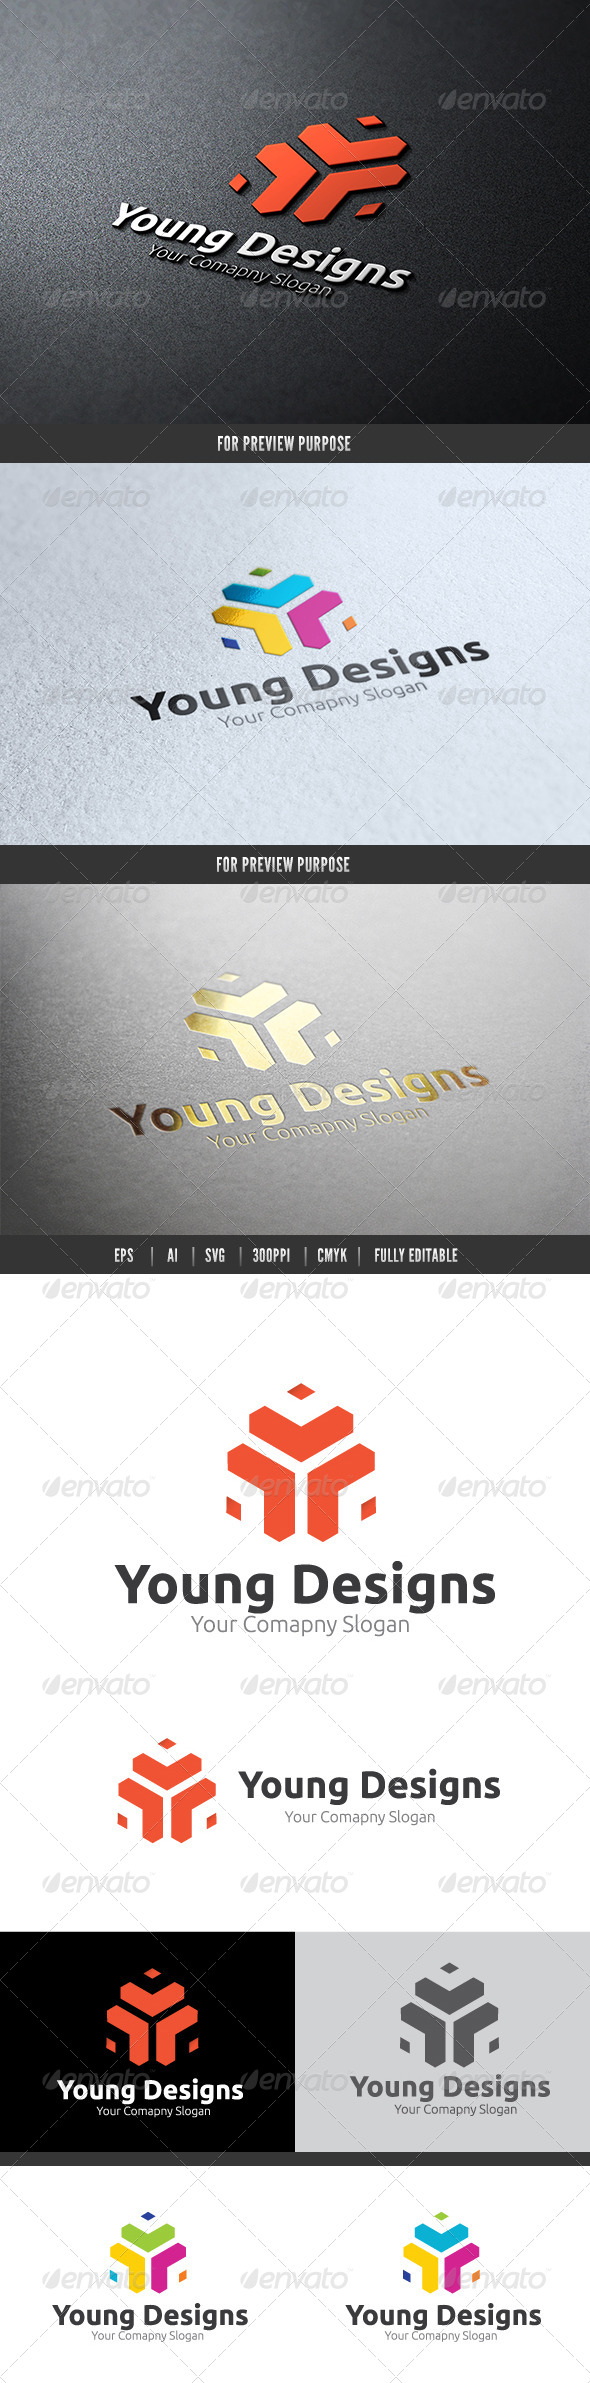 Young Designs